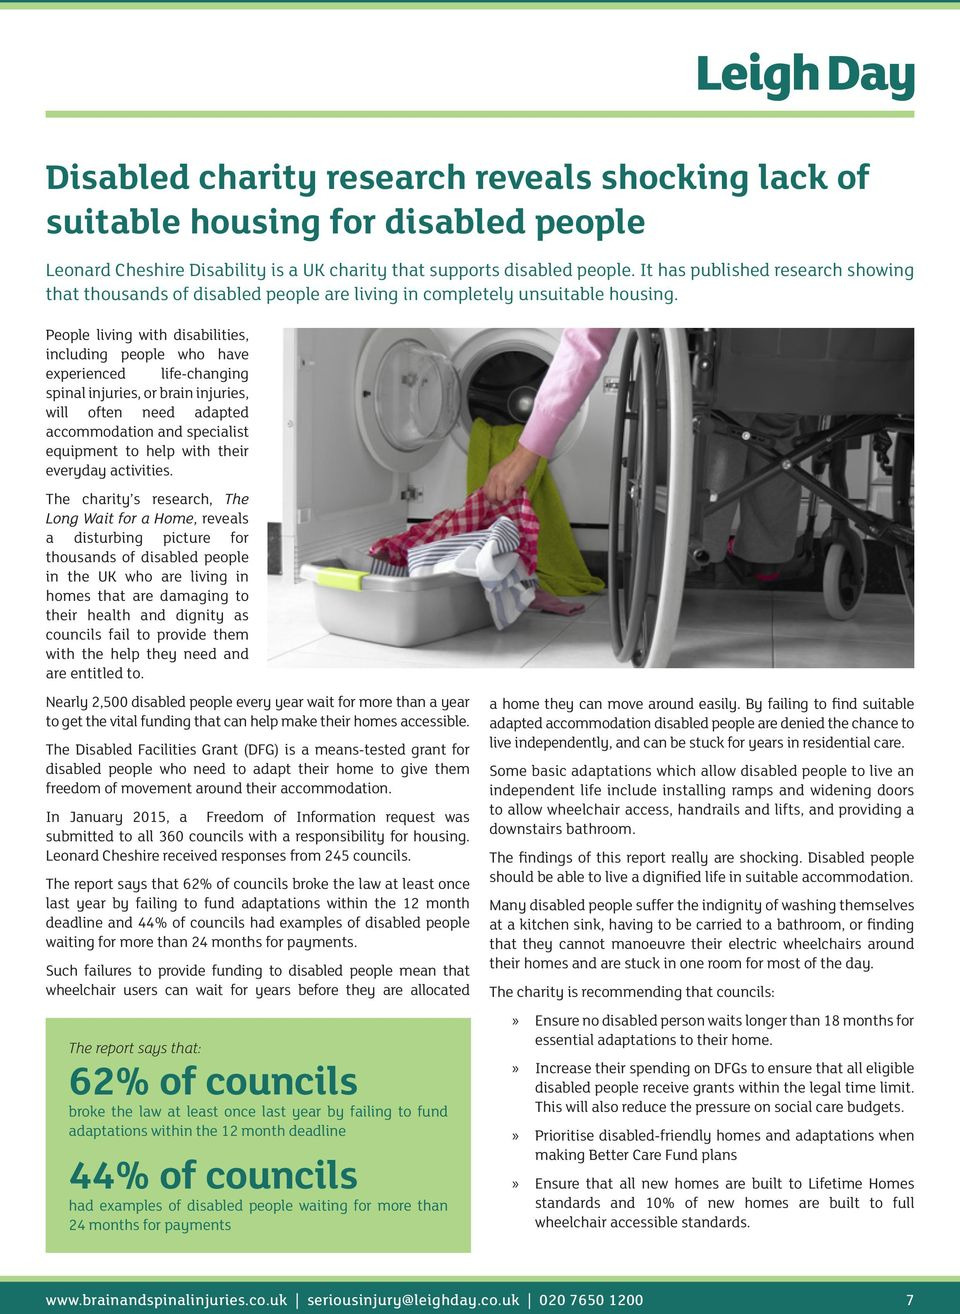 People living with disabilities, including people who have experienced life-changing spinal injuries, or brain injuries, will often need adapted accommodation and specialist equipment to help with